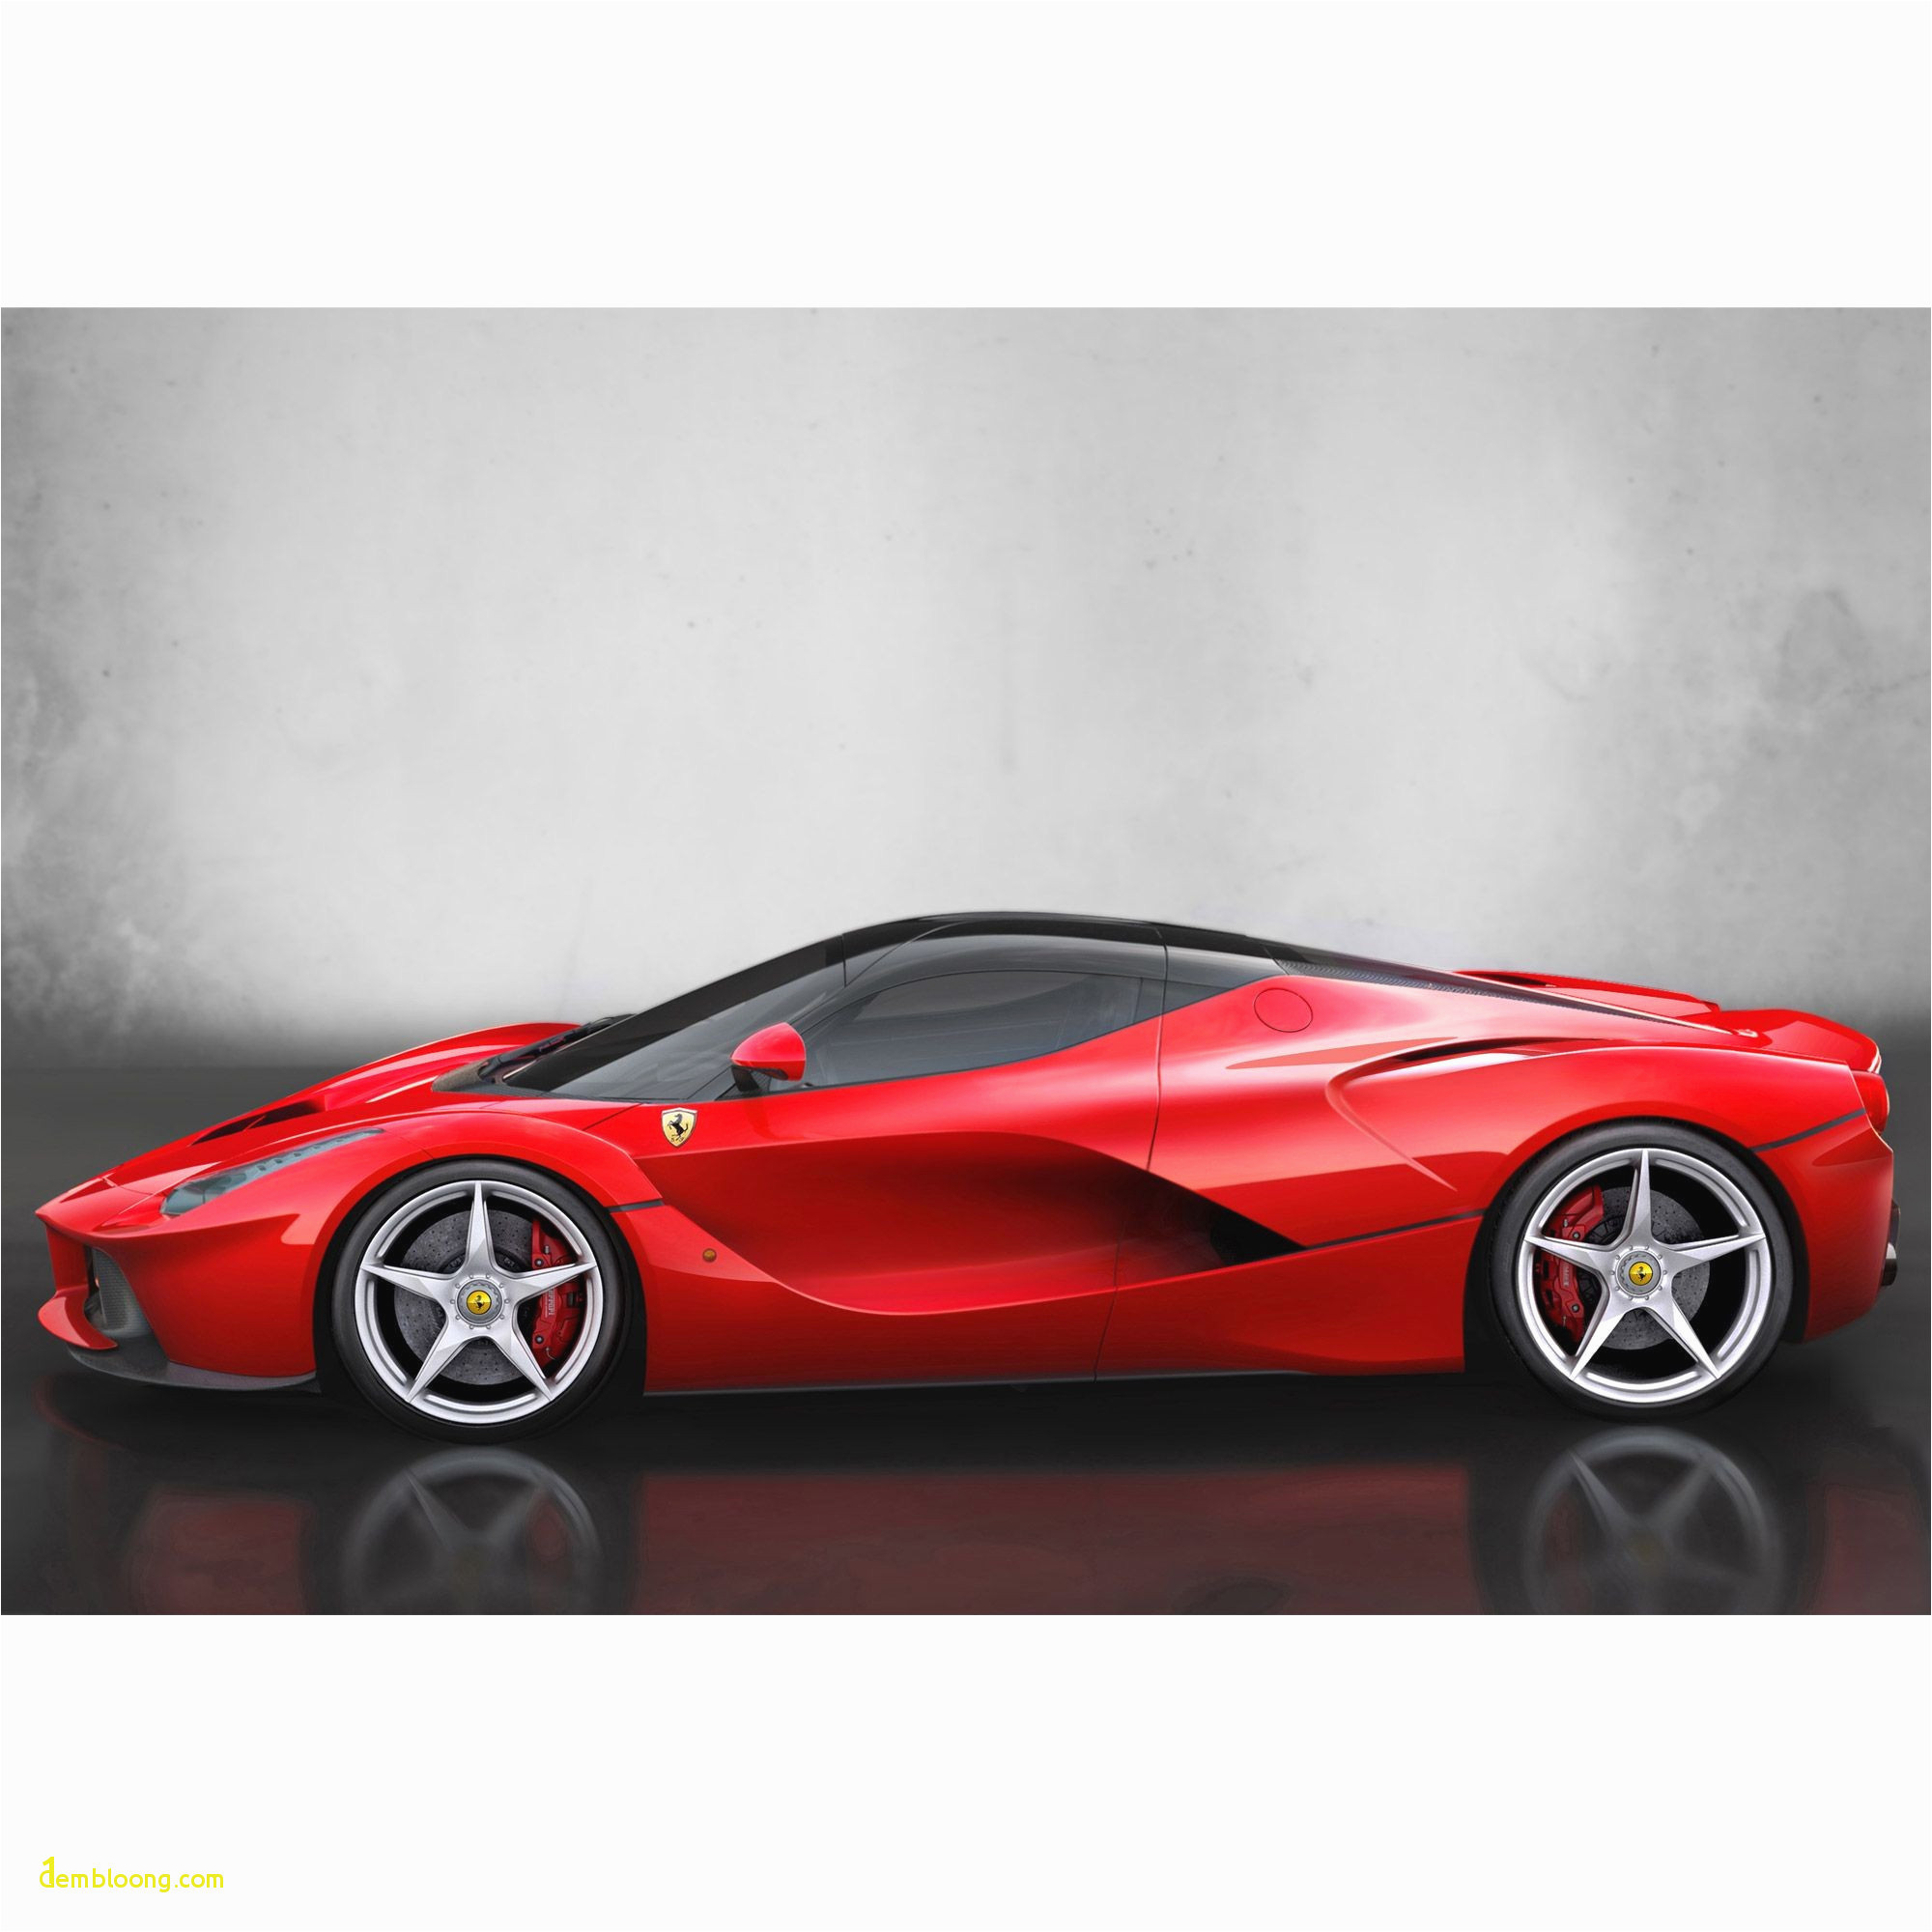 Red Ferrari Car Inspirational Laferrari Model at 1 8 Scale – Exclusive Web Preview Laferrari